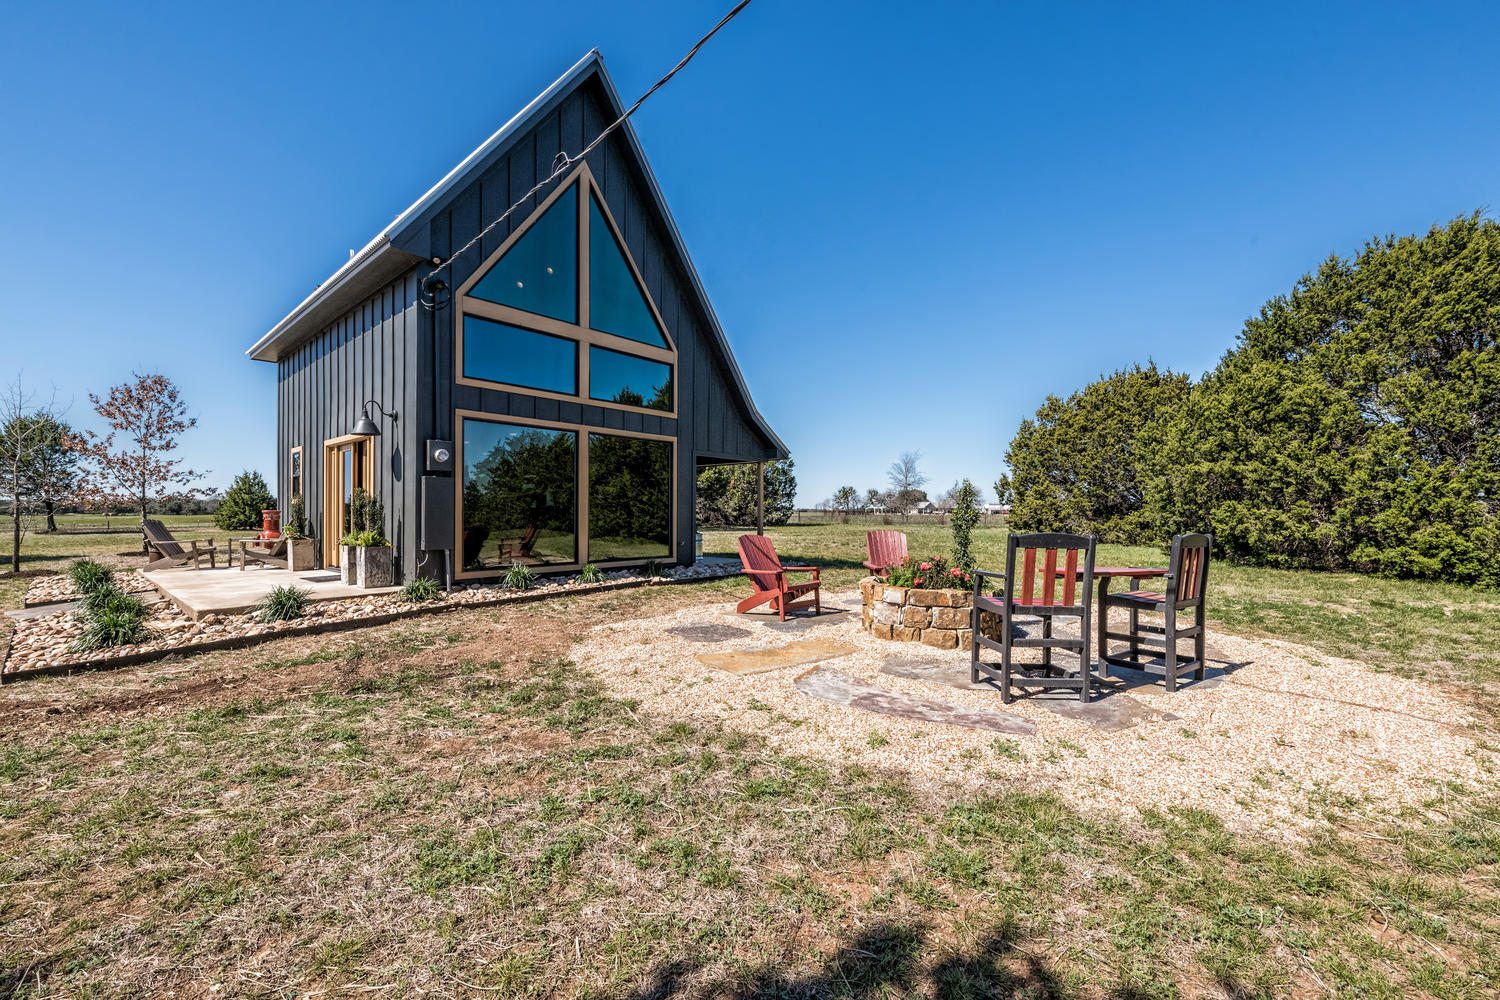 Fixer Upper Waco Cabin Rental Photos Apartment Therapy